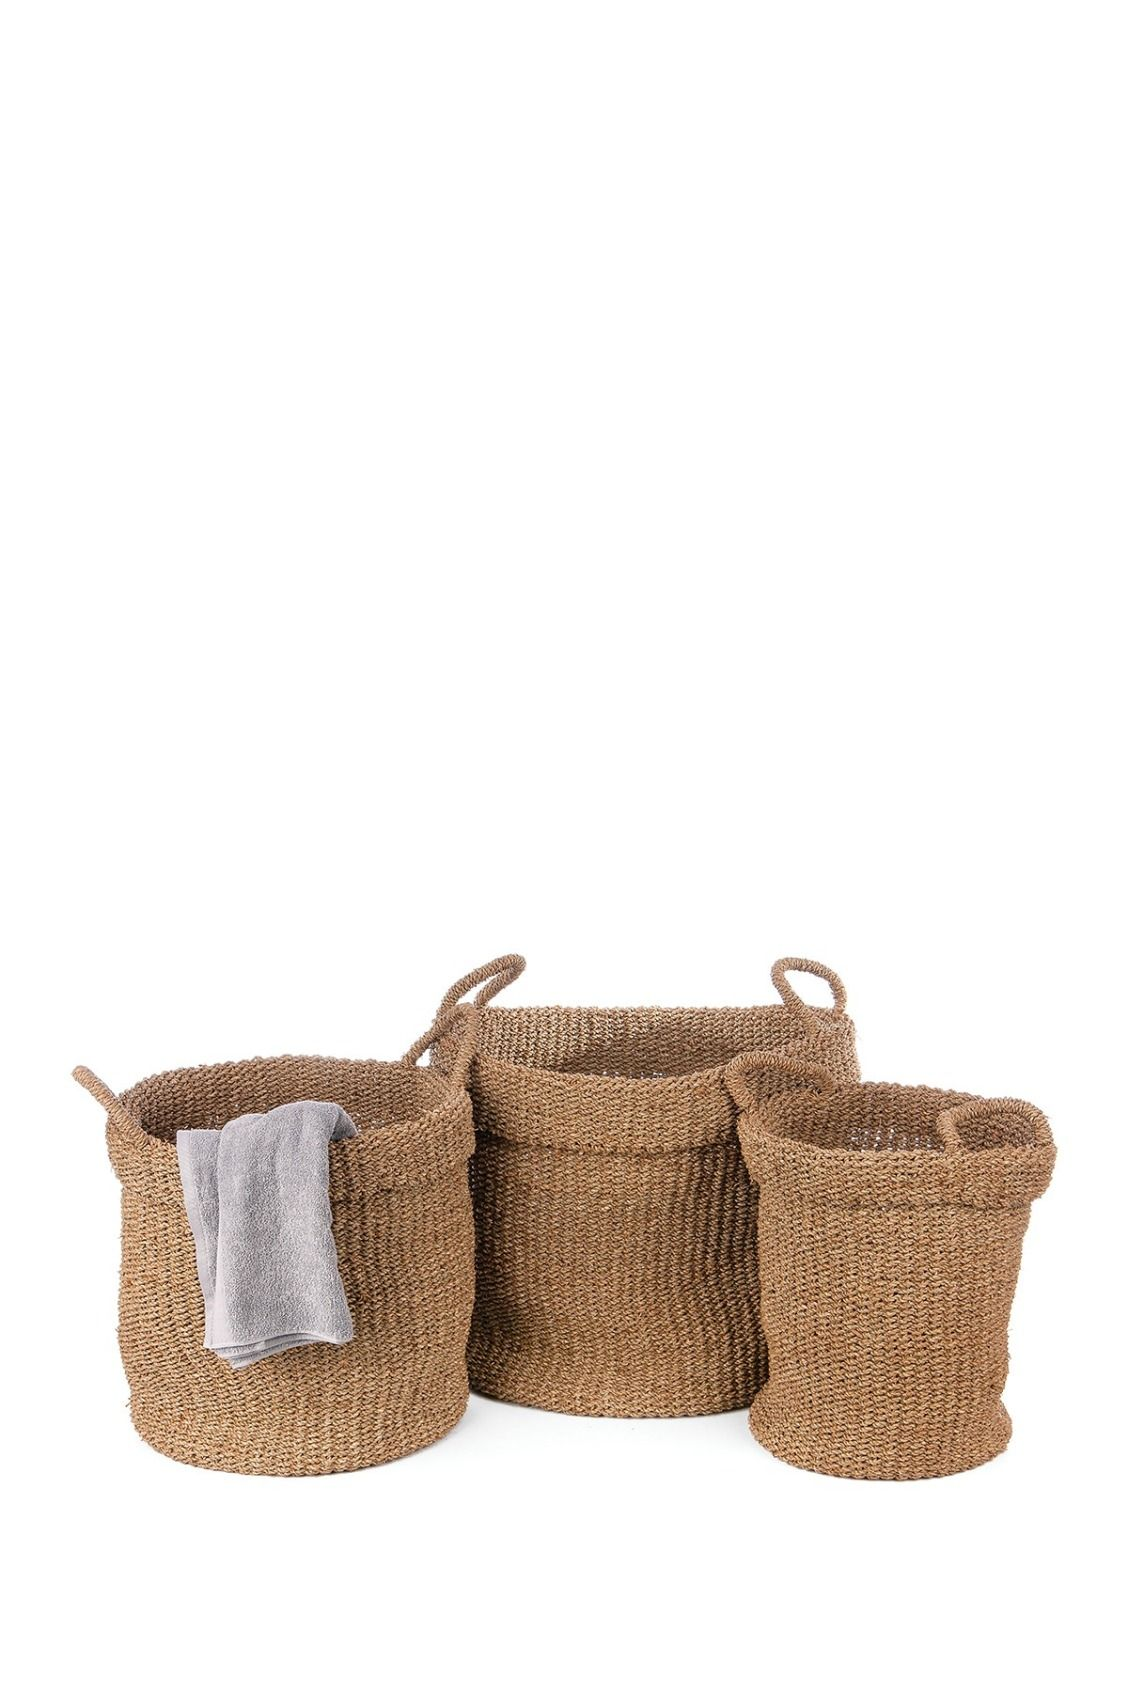 Perfect for storage or laundry!  SKALNY Seagrass Utility Basket Set